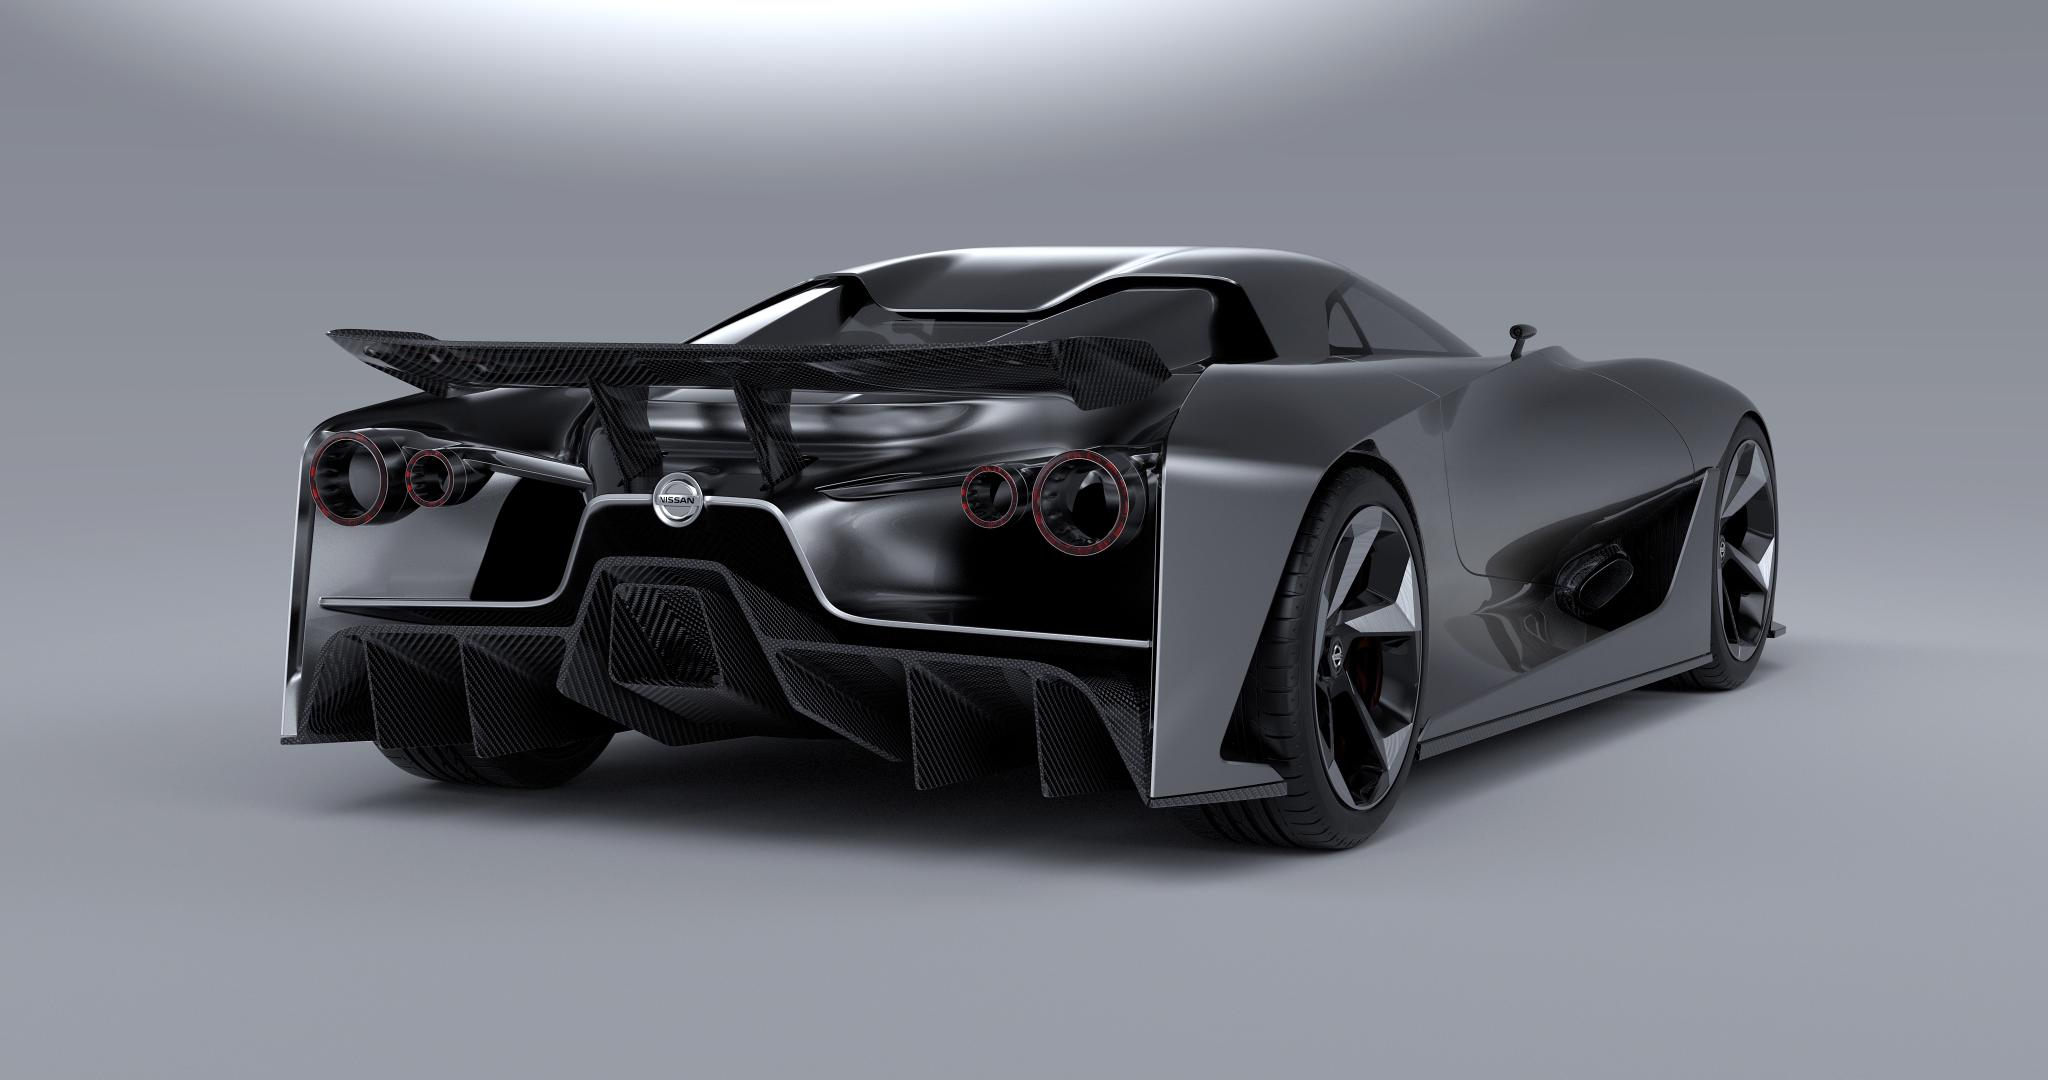 Next Nissan GT-R will be world's fastest super sports vehicle